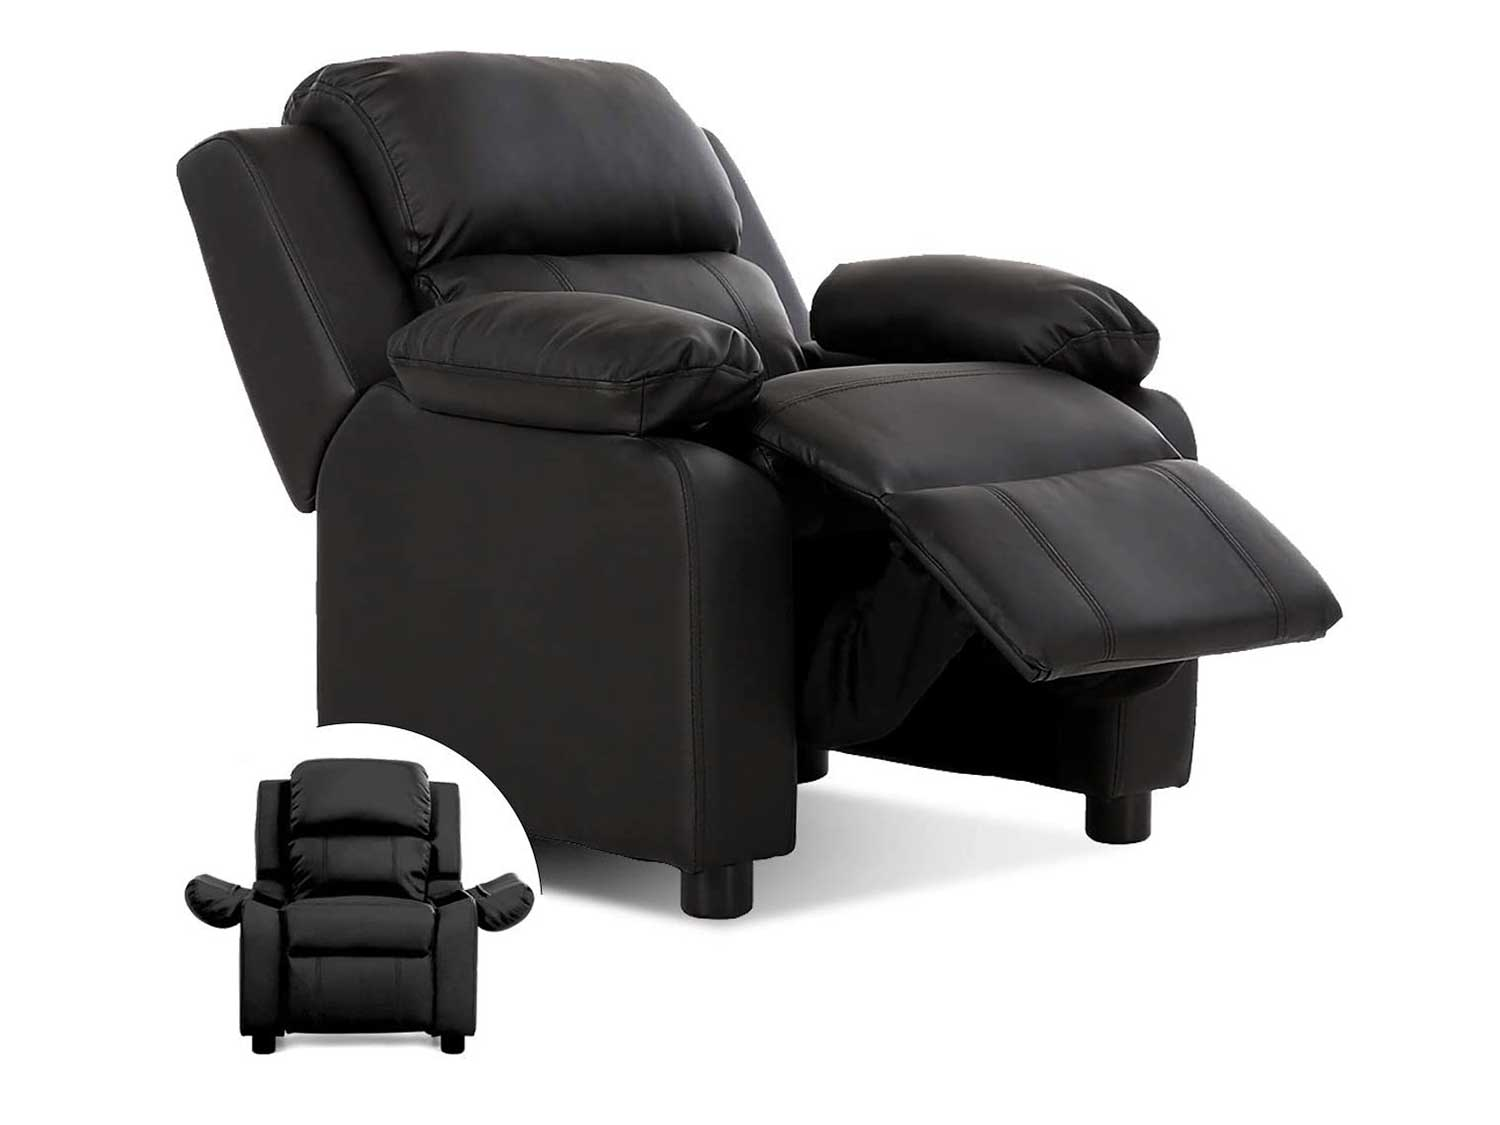 Costzon Kids Sofa Recliner, Children PU Leather Armchair W/Front Footrest, Flip-up Storage Arms, Padded Backrest, Ergonomic Contemporary Sofa for Toddler Boys Girls, Lightweight Sofa Chair (Black)